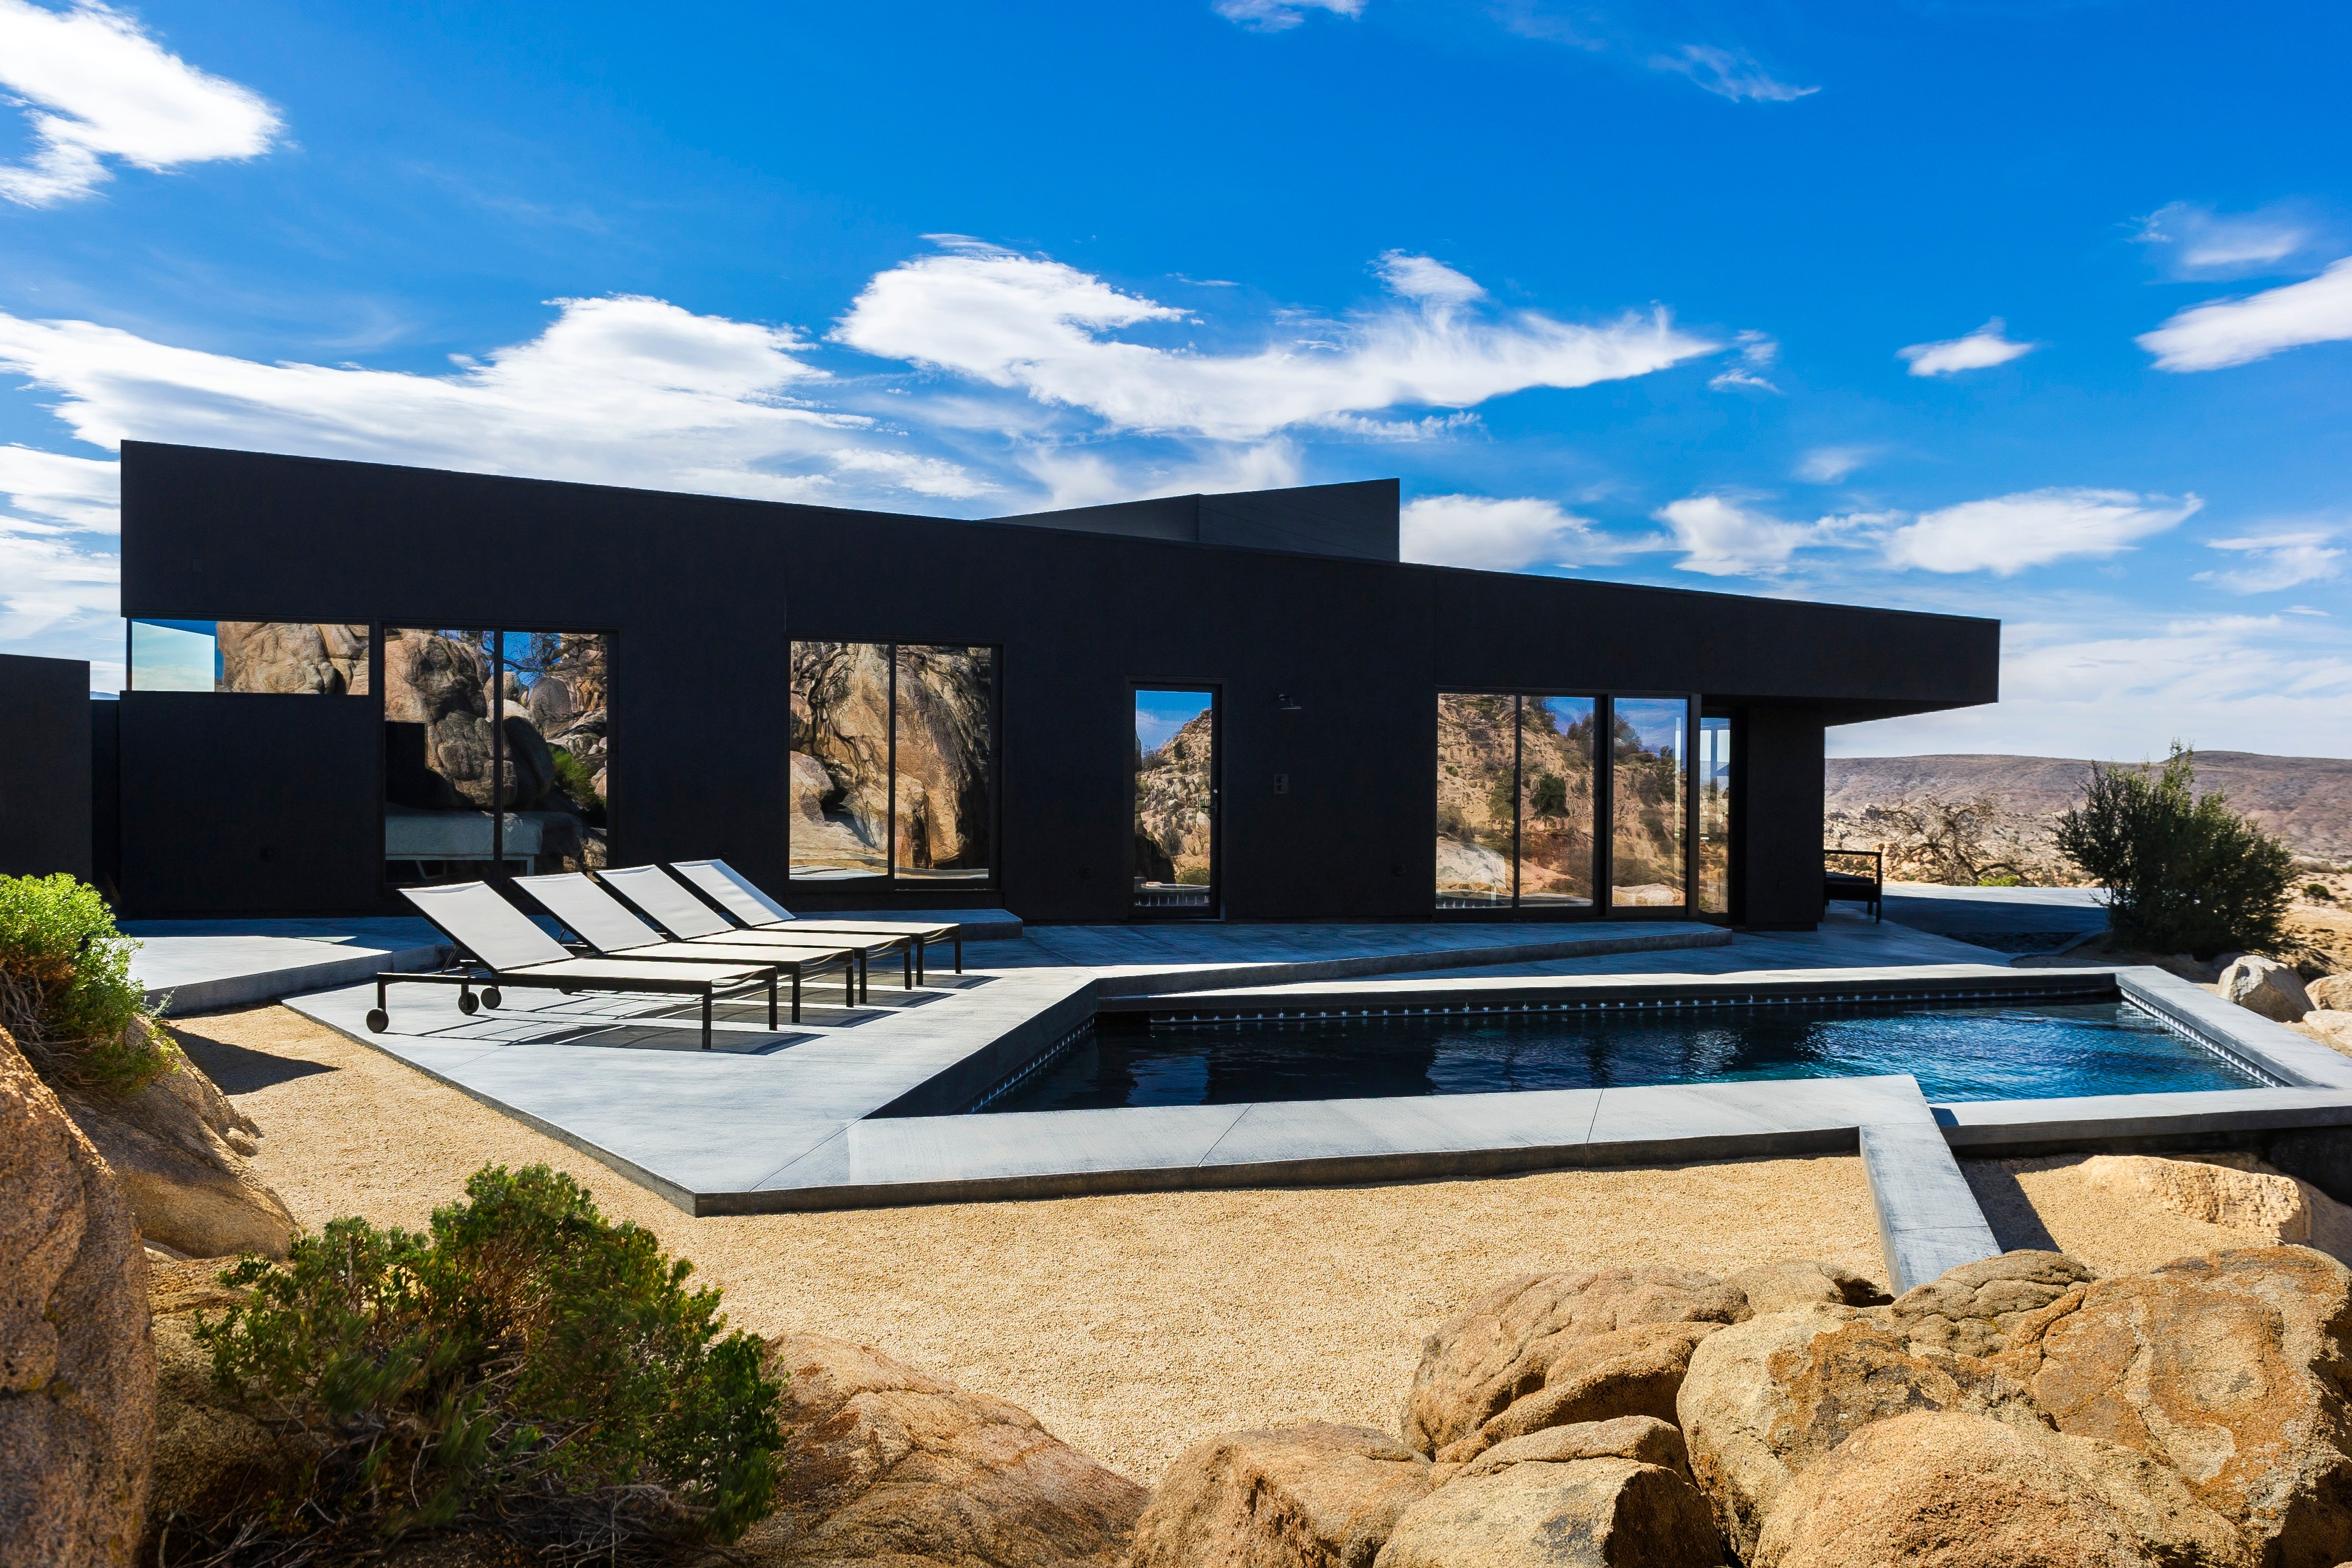 The Black Desert House by Marc Atlan + Oller & Pejic